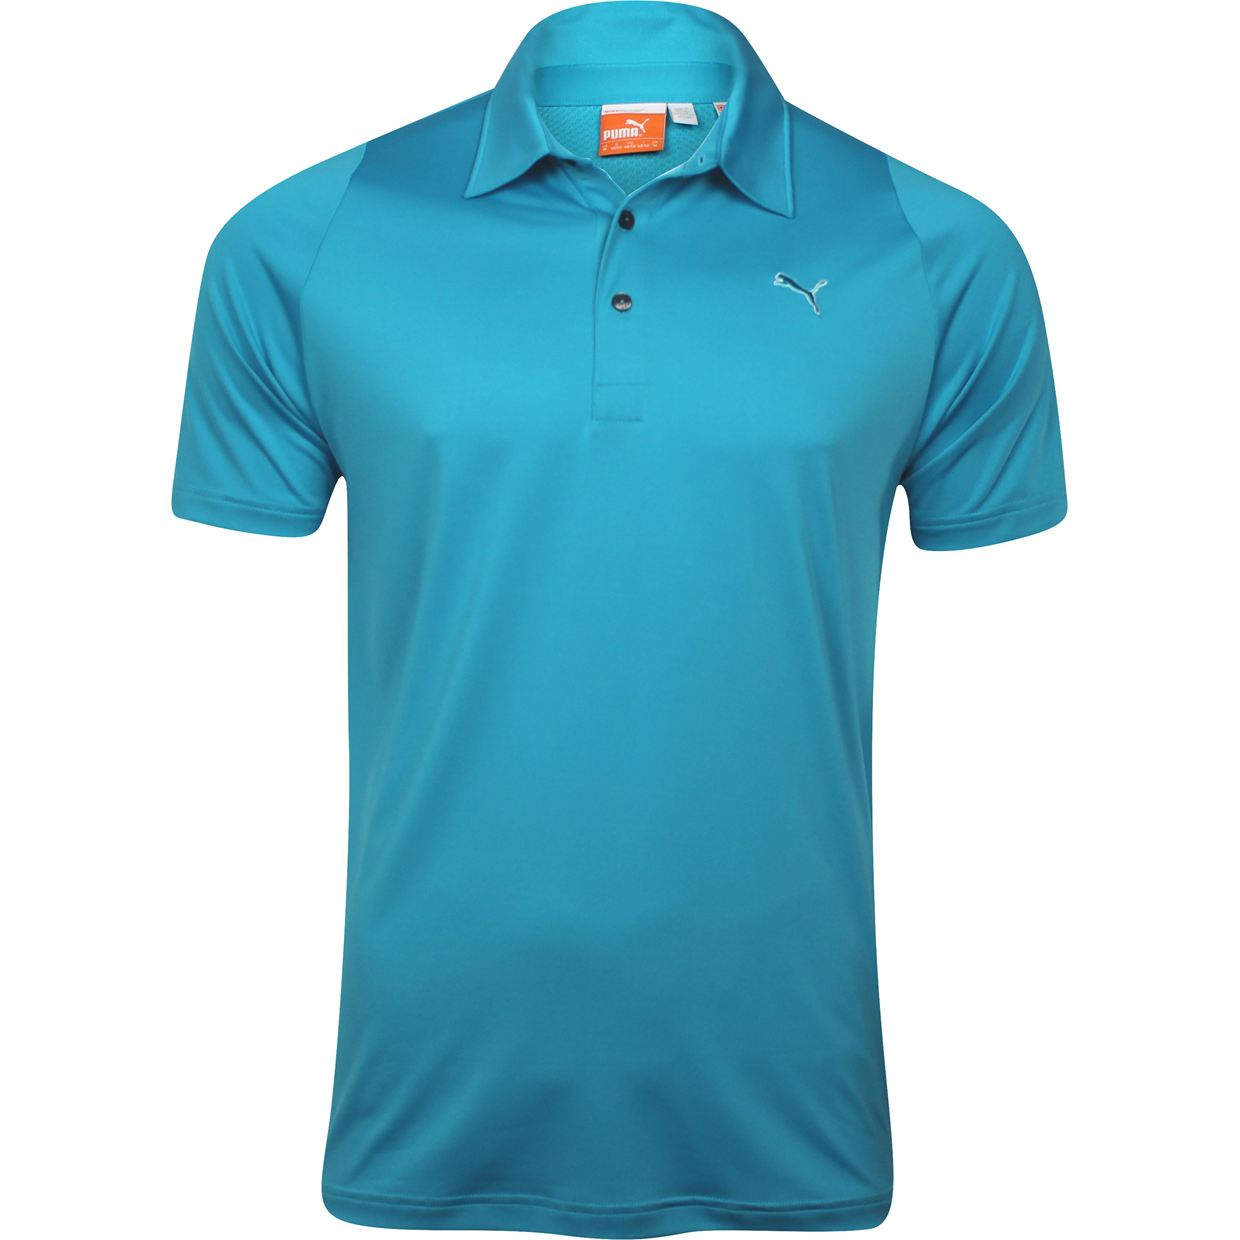 puma sweater golf apparel at